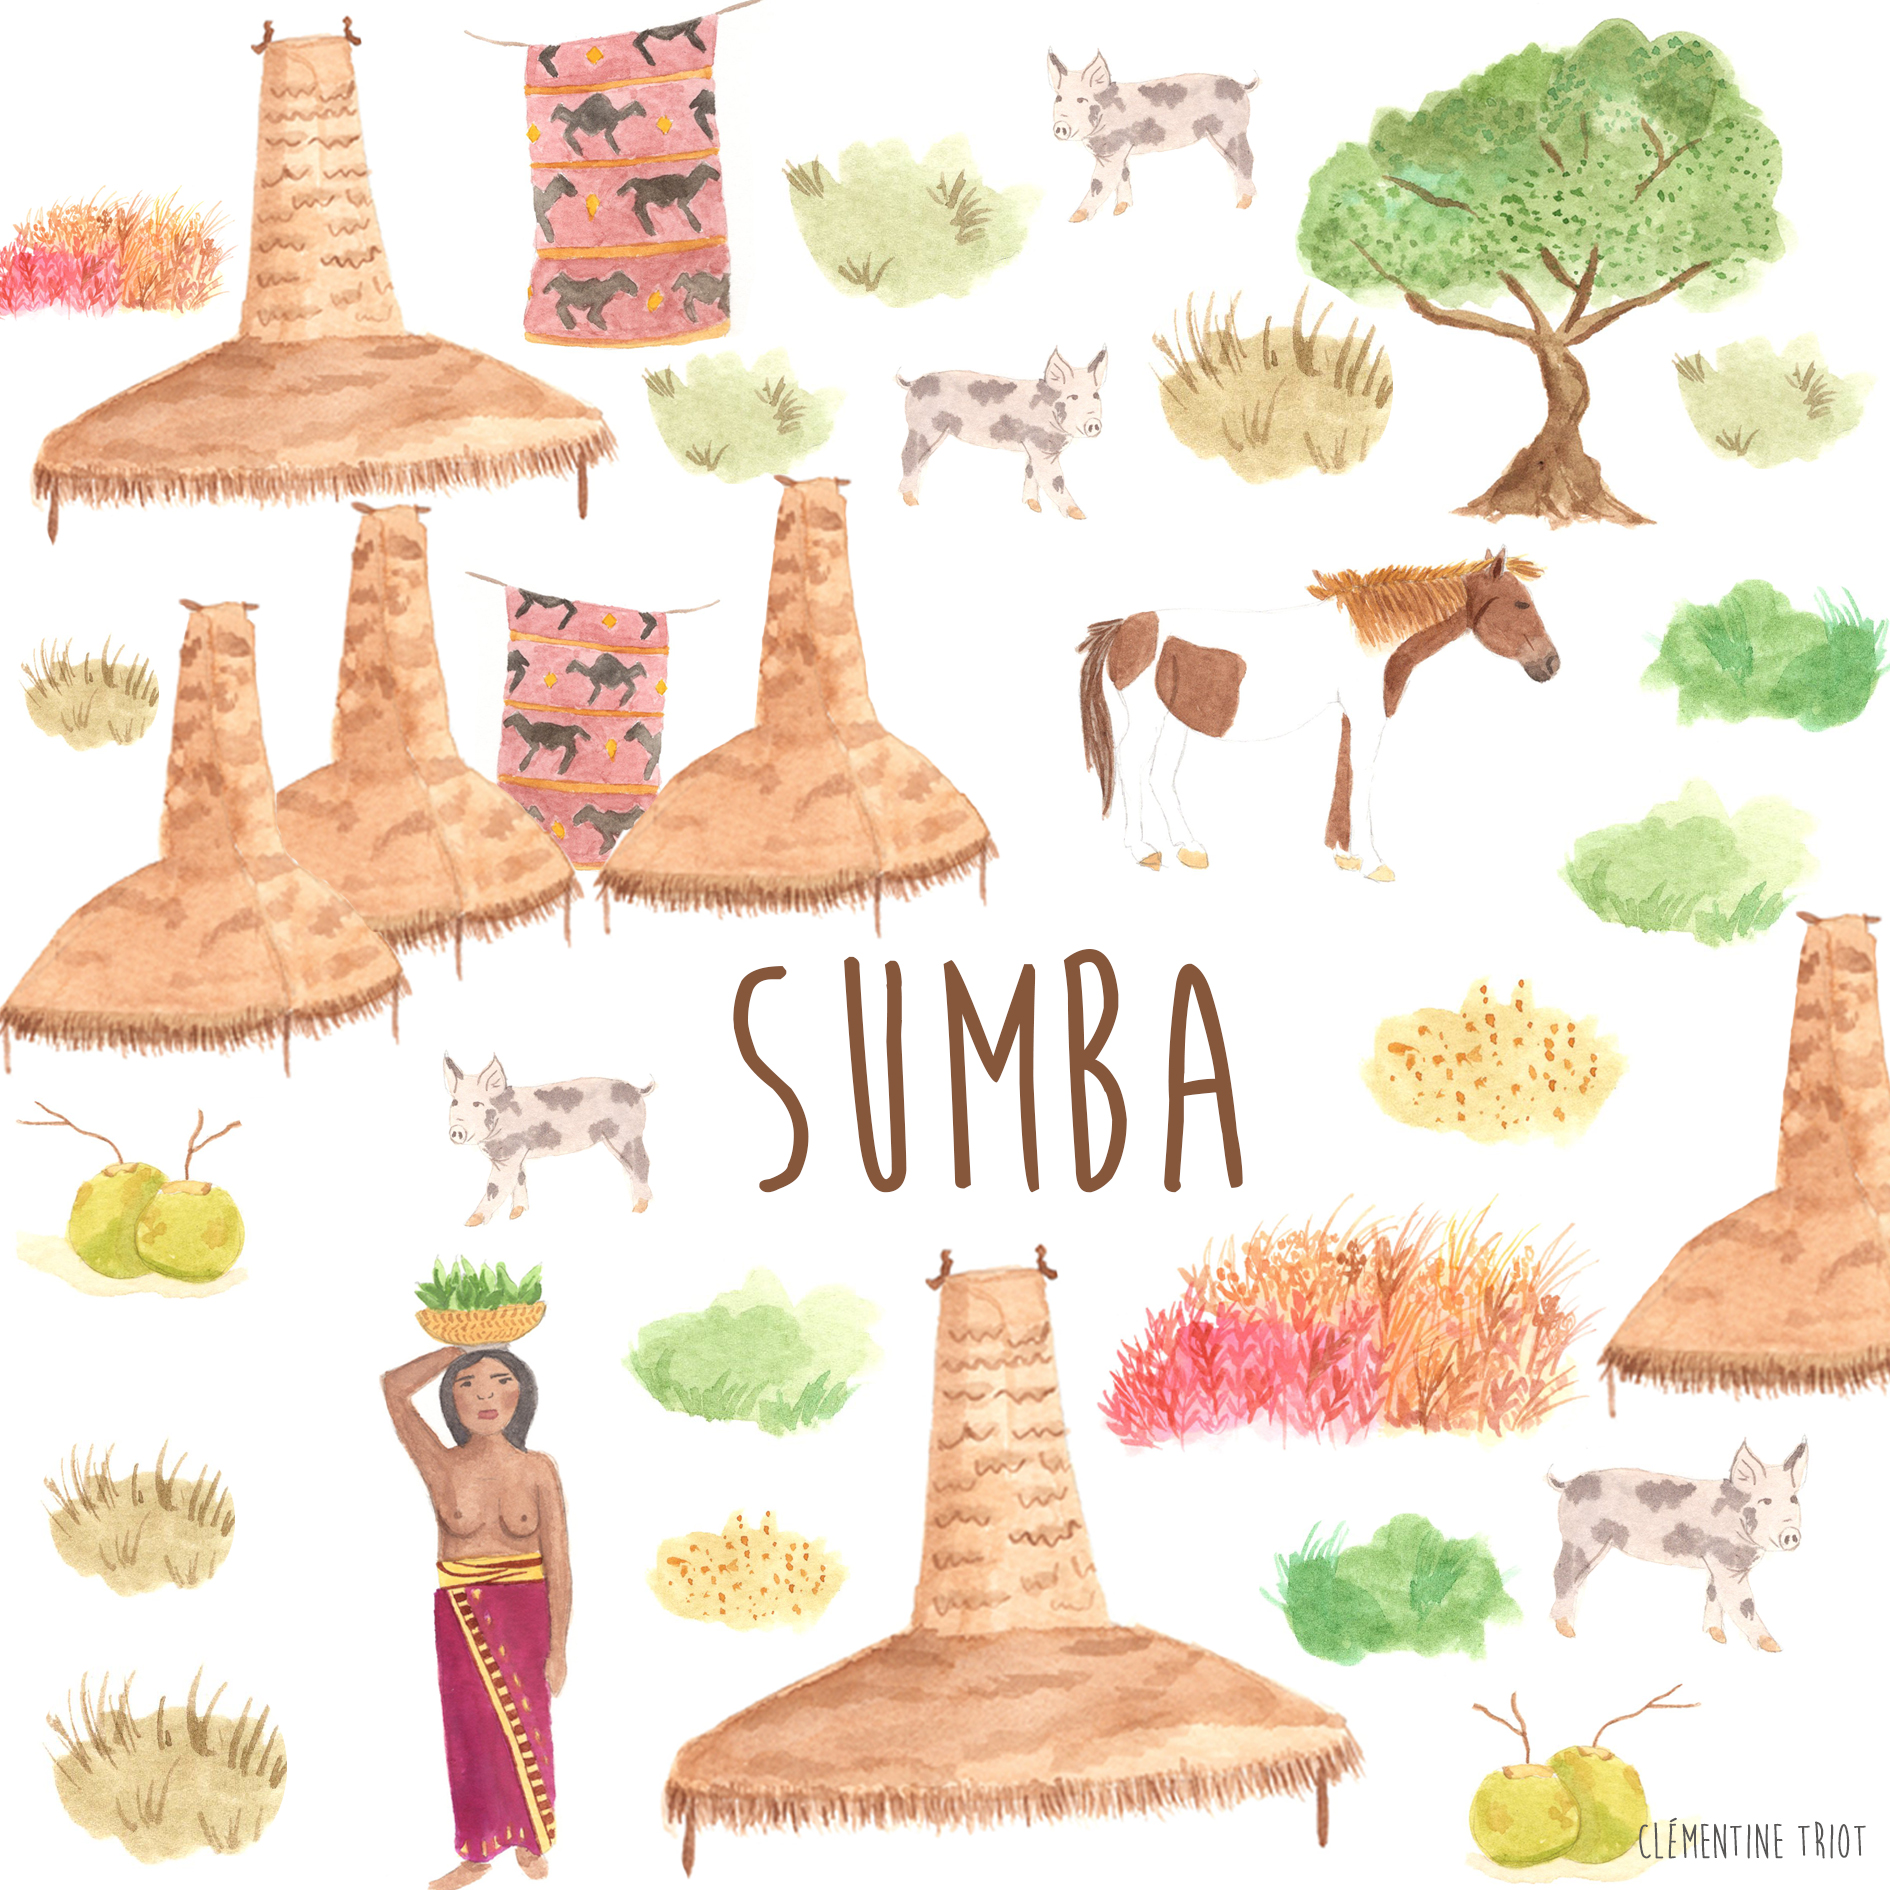 Clementine Triot Illustrations Sumba illustrated diary